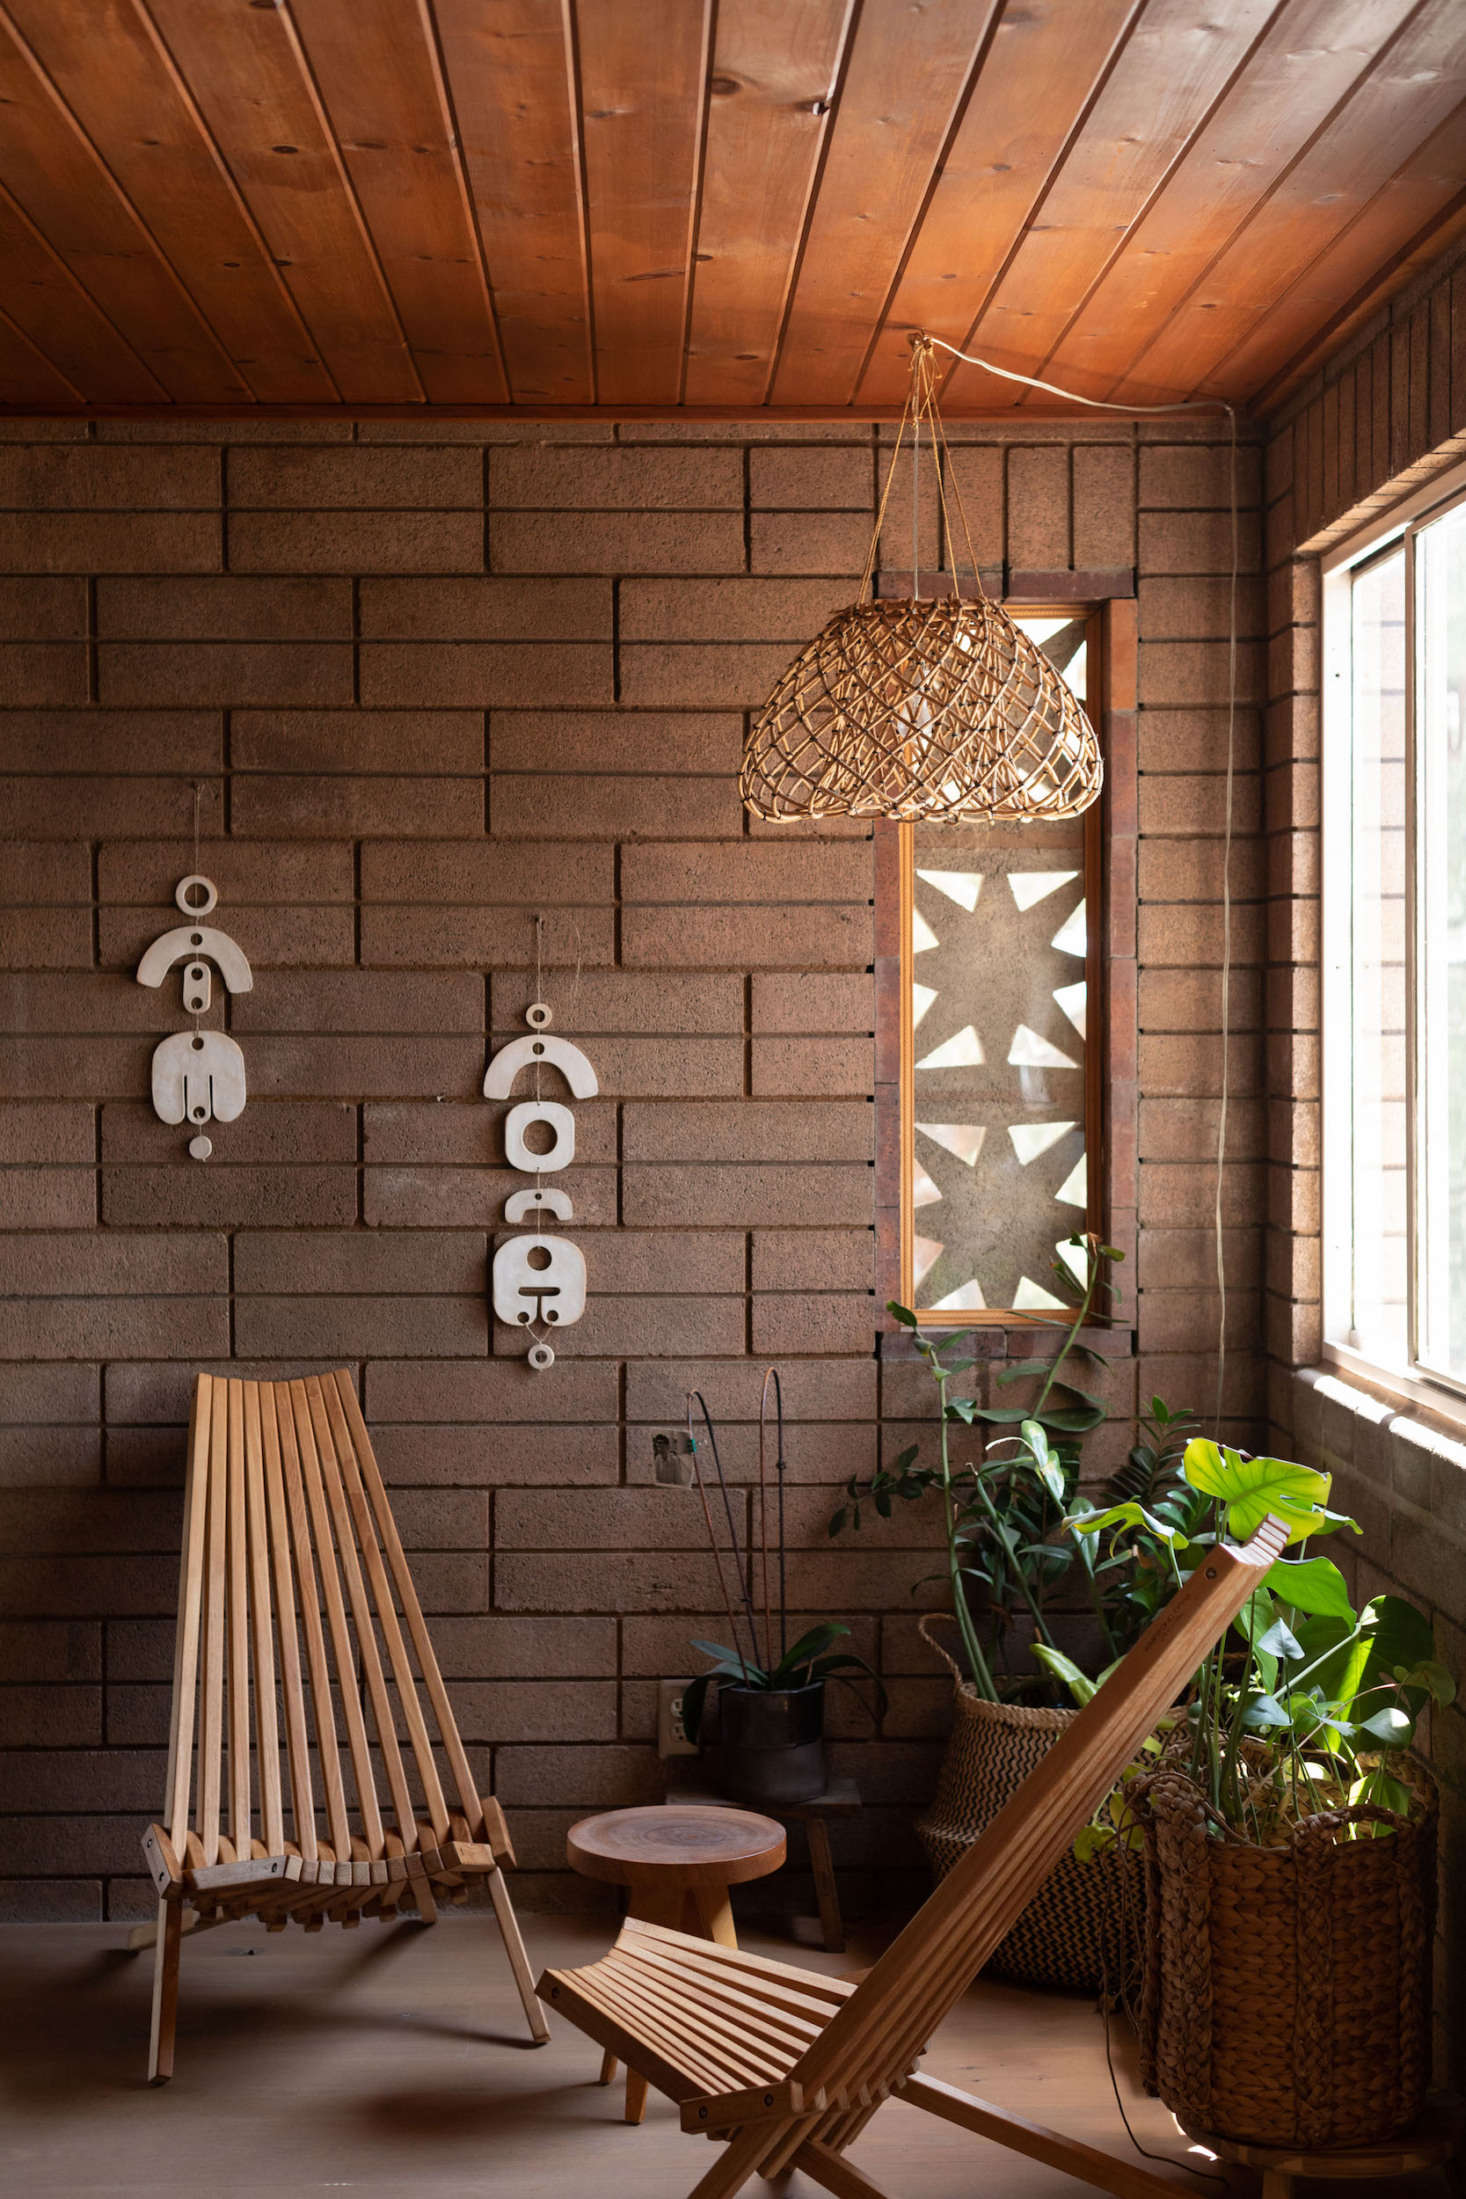 The lamp and wall hangings are all by Wilkinson. For similar foldable chairs, check out GloDea.